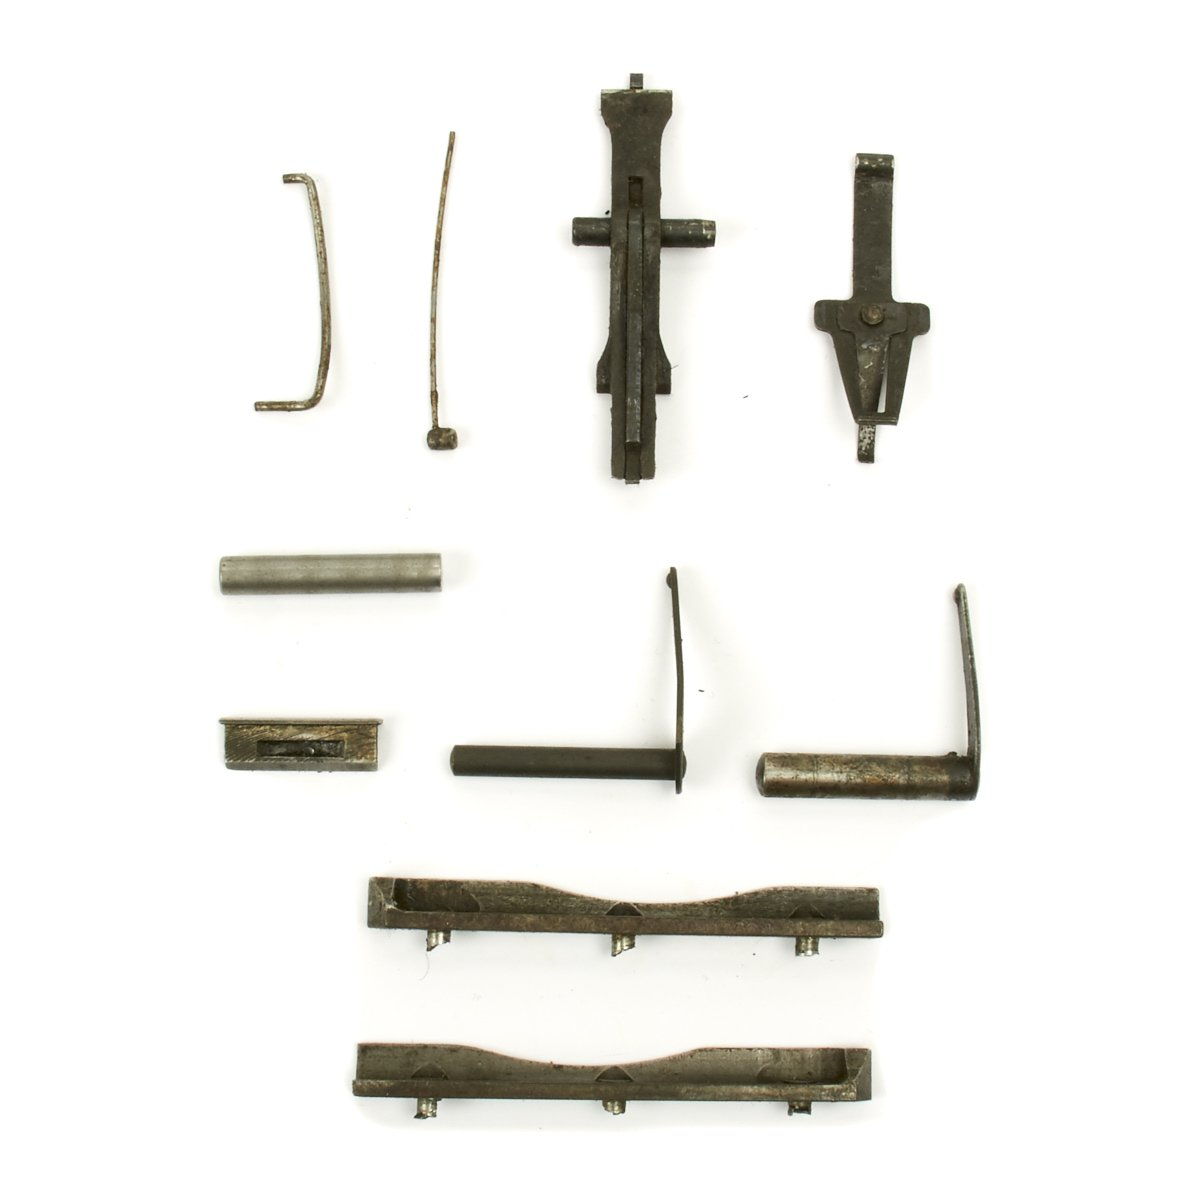 Original U S  Browning 1918A2 BAR Parts Set with Demilled